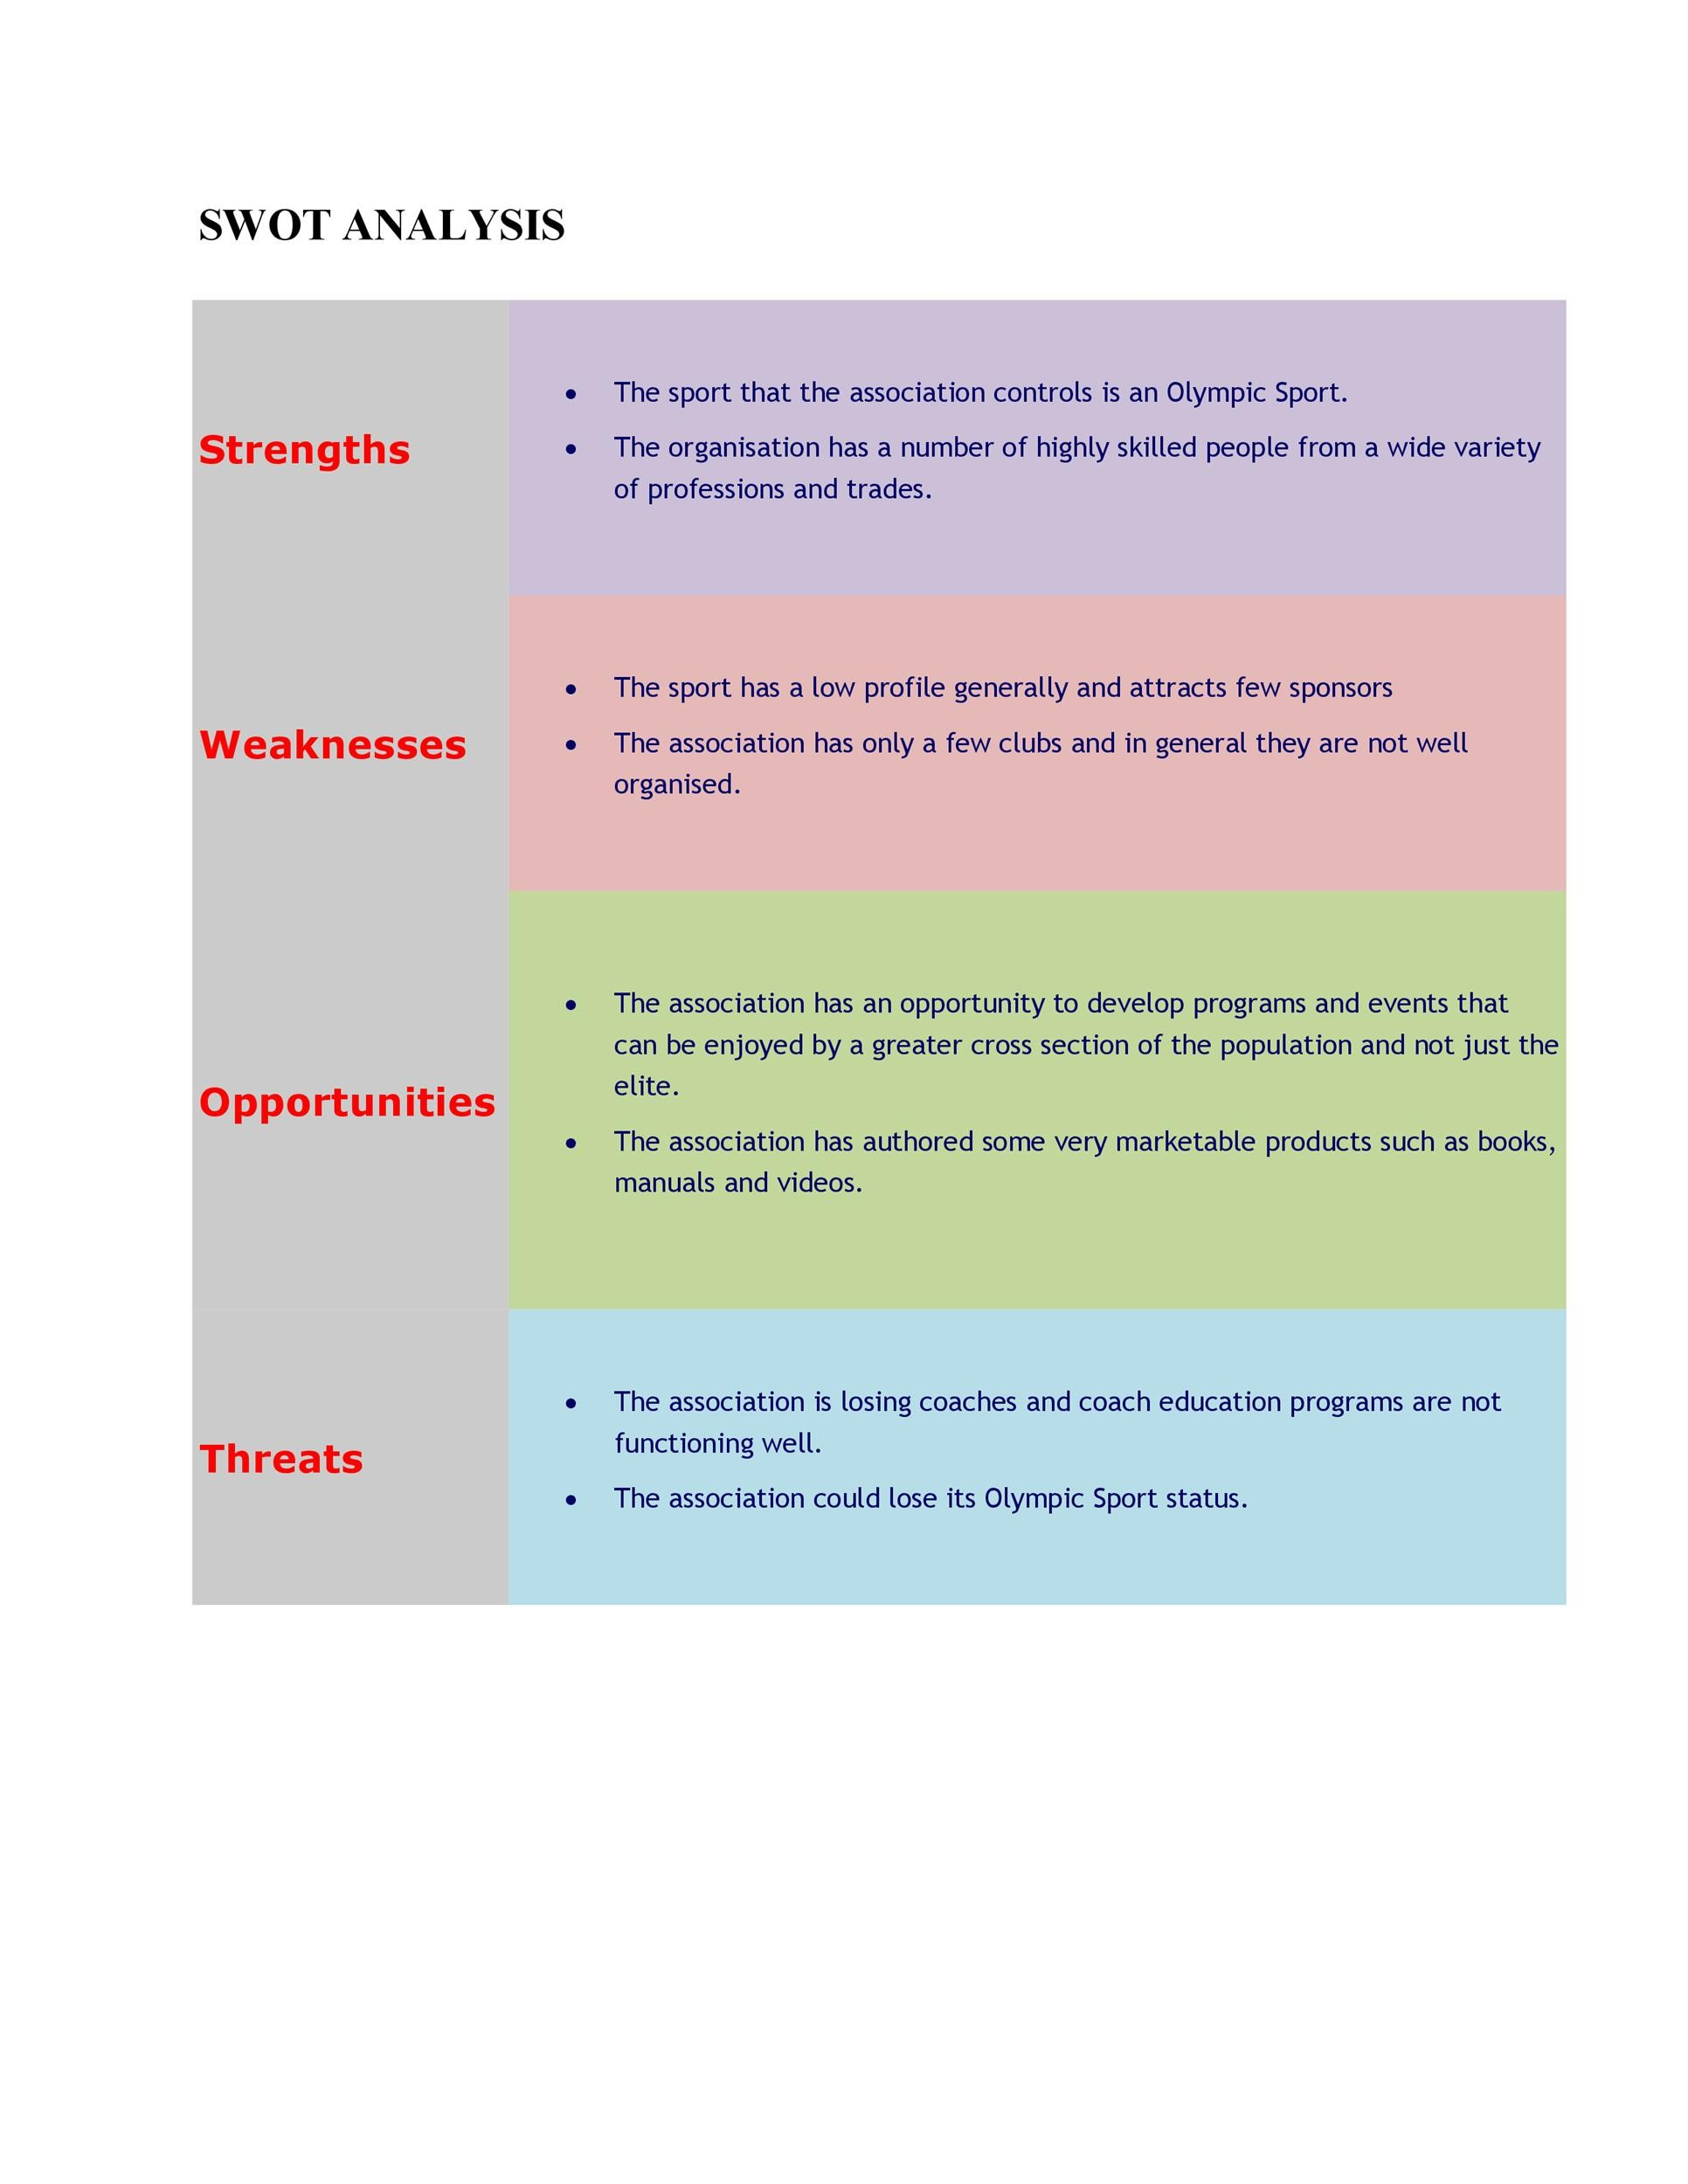 Personal swot analysis to assess and improve yourself creately blog.